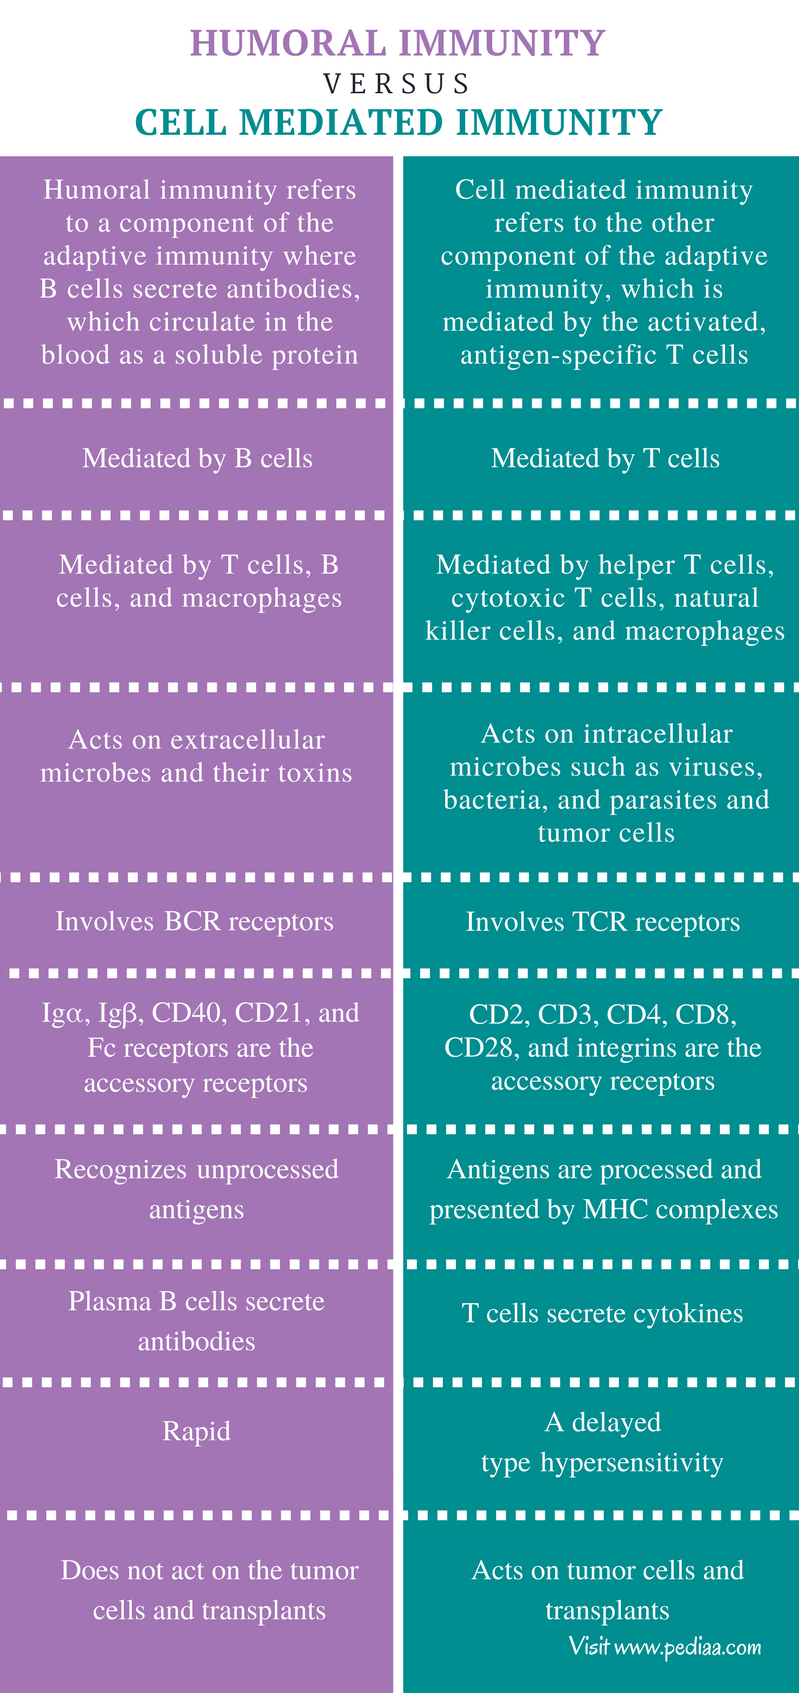 Difference Between Humoral and Cell Mediated Immunity - Comparison Summary